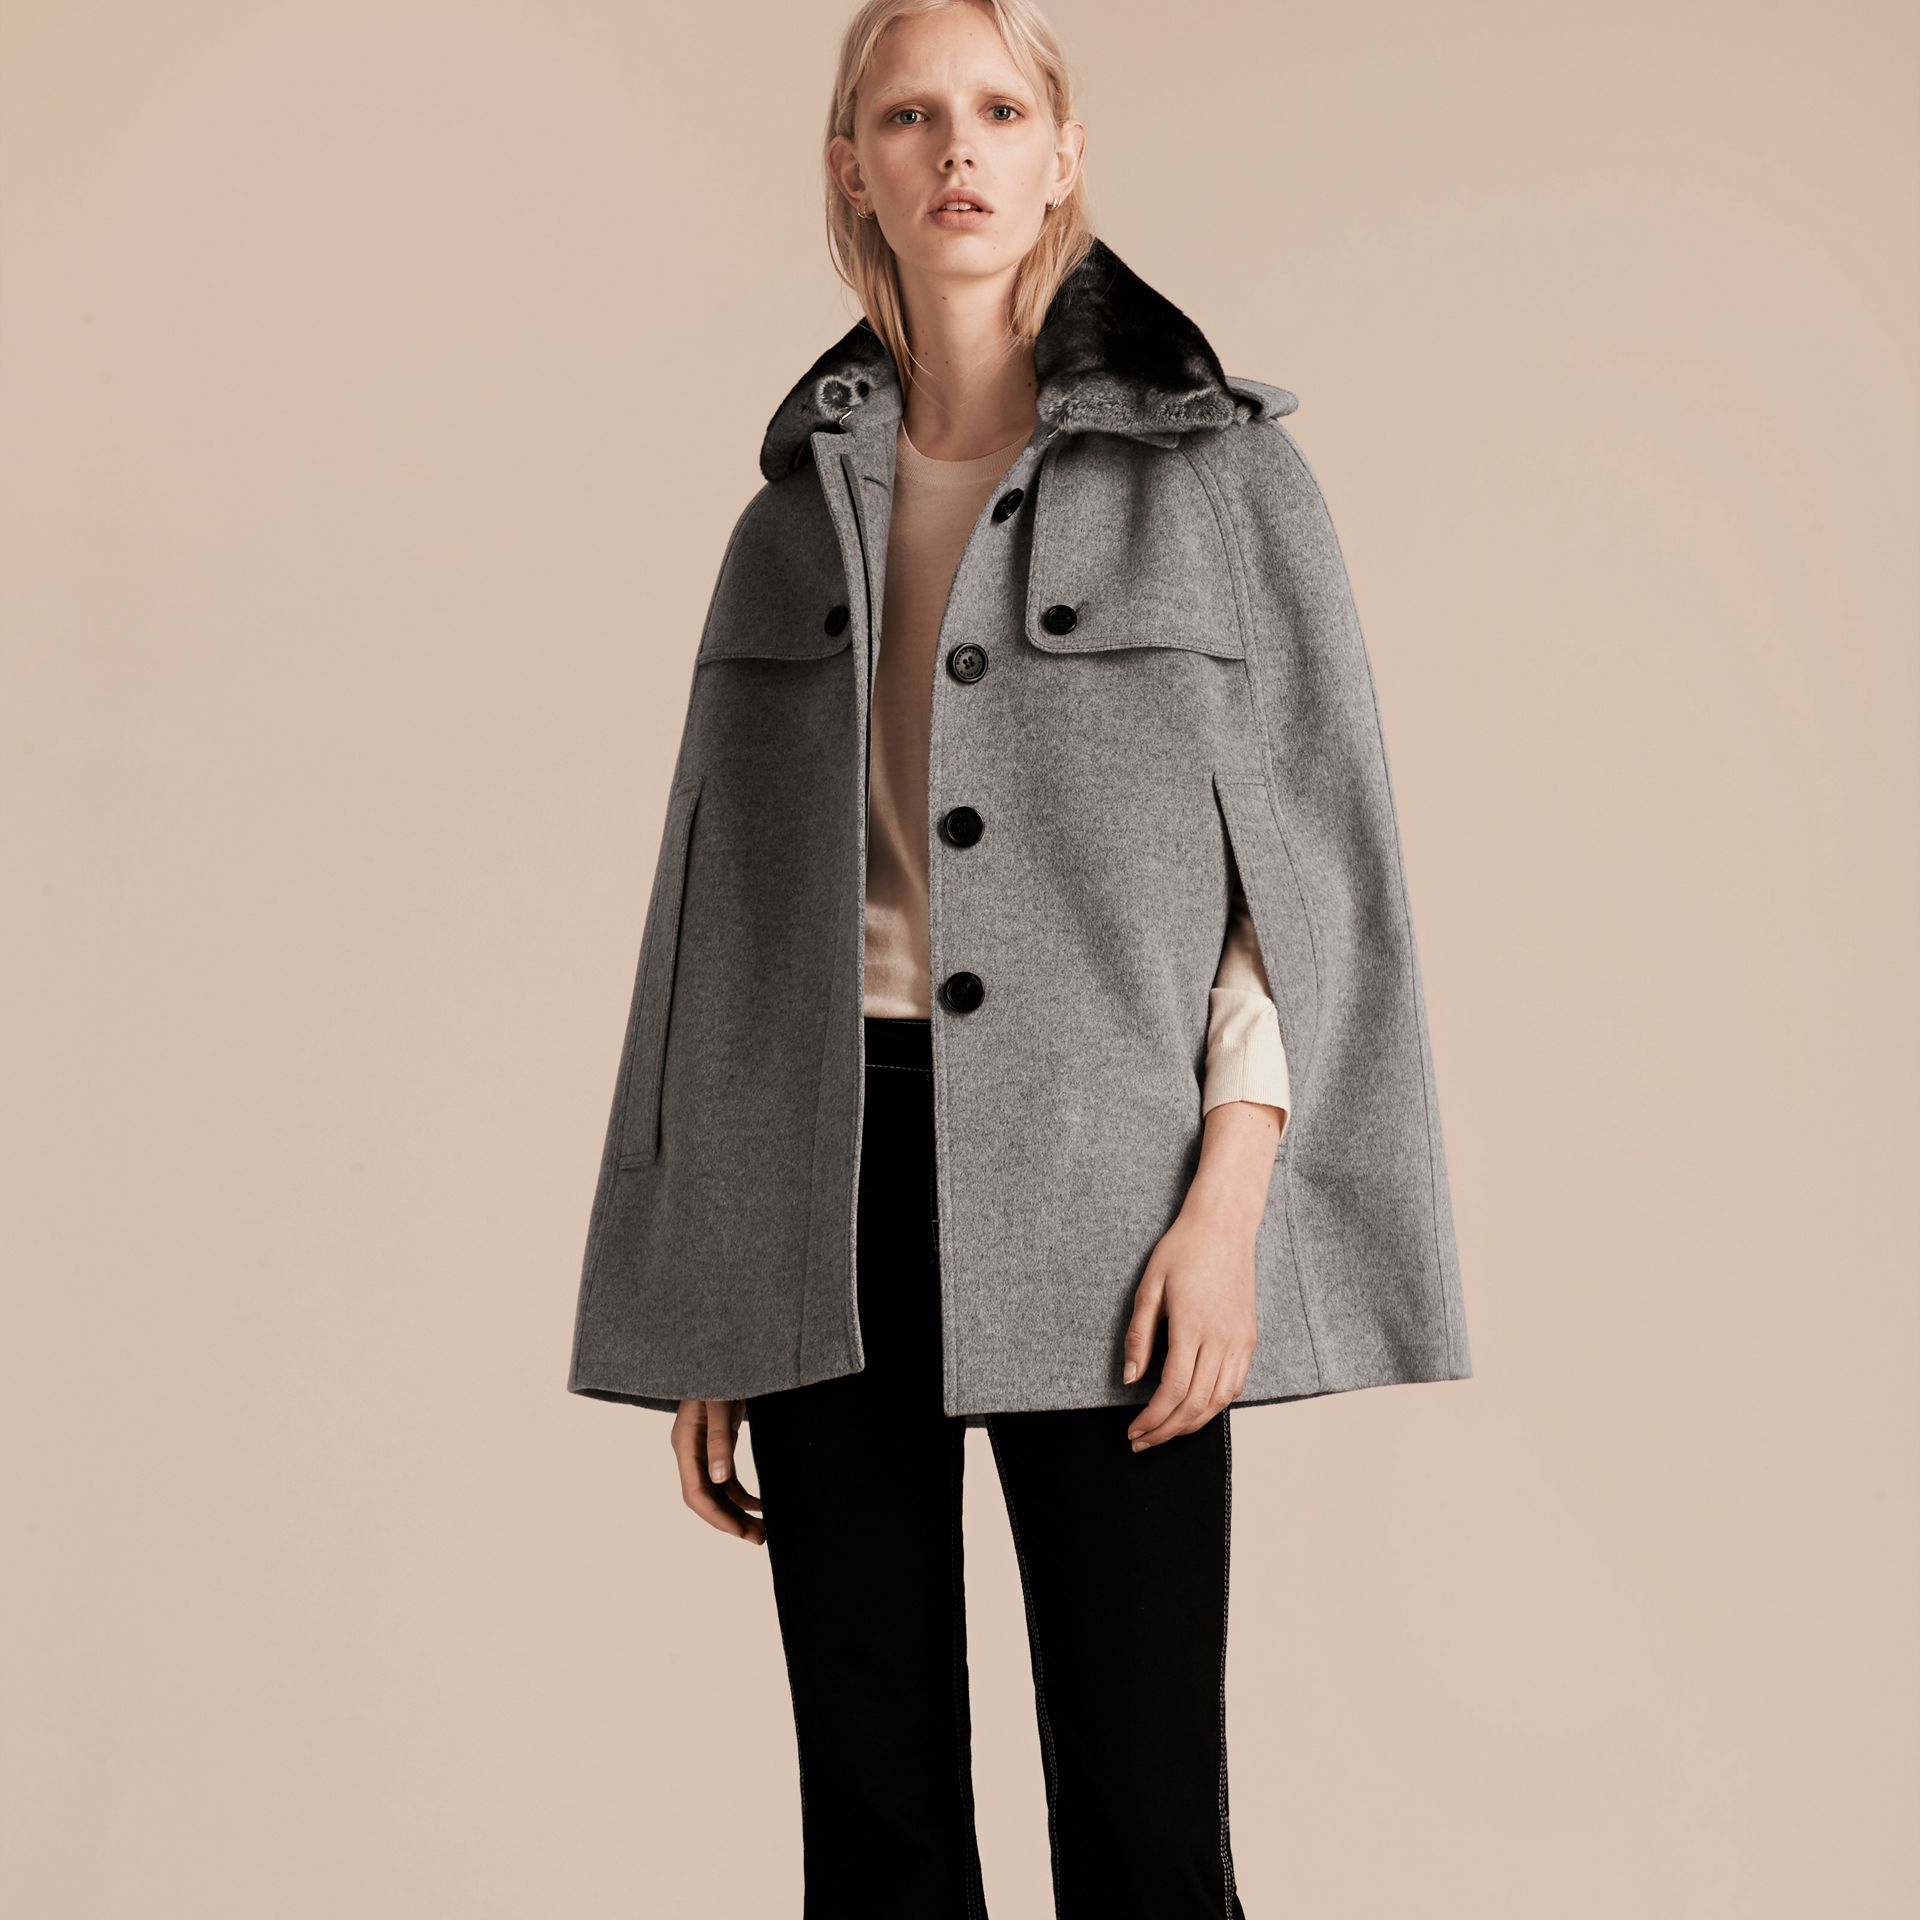 Pale grey melange Wool Cashmere Trench Cape with Detachable Fur Collar - gallery image 7